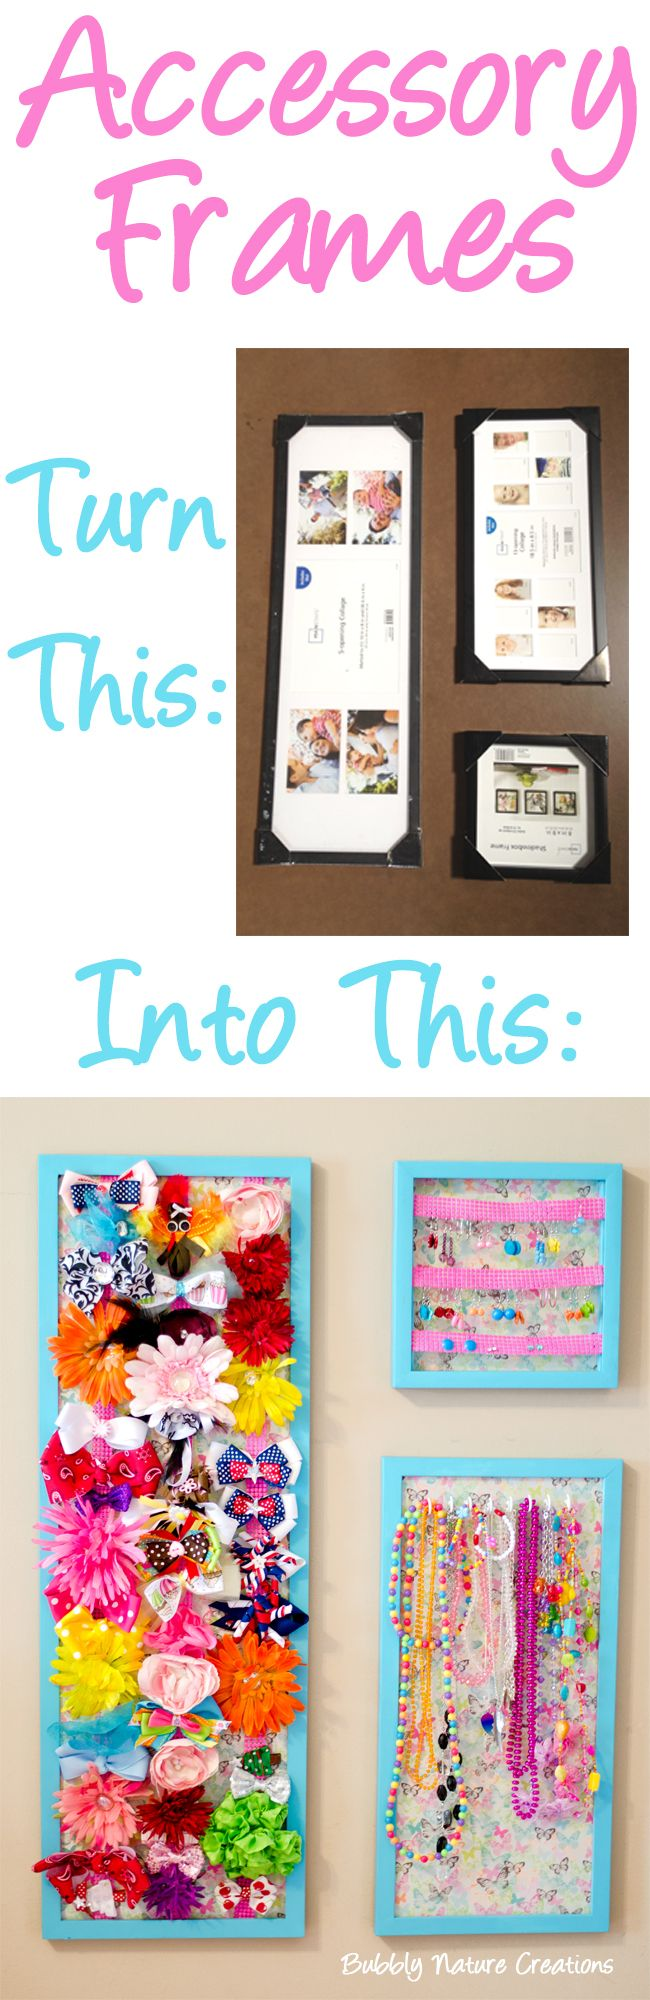 How to organize hair bows - Use These Frames To Help Store And Organize Your Little Girl S Hair Bows Or Necklaces